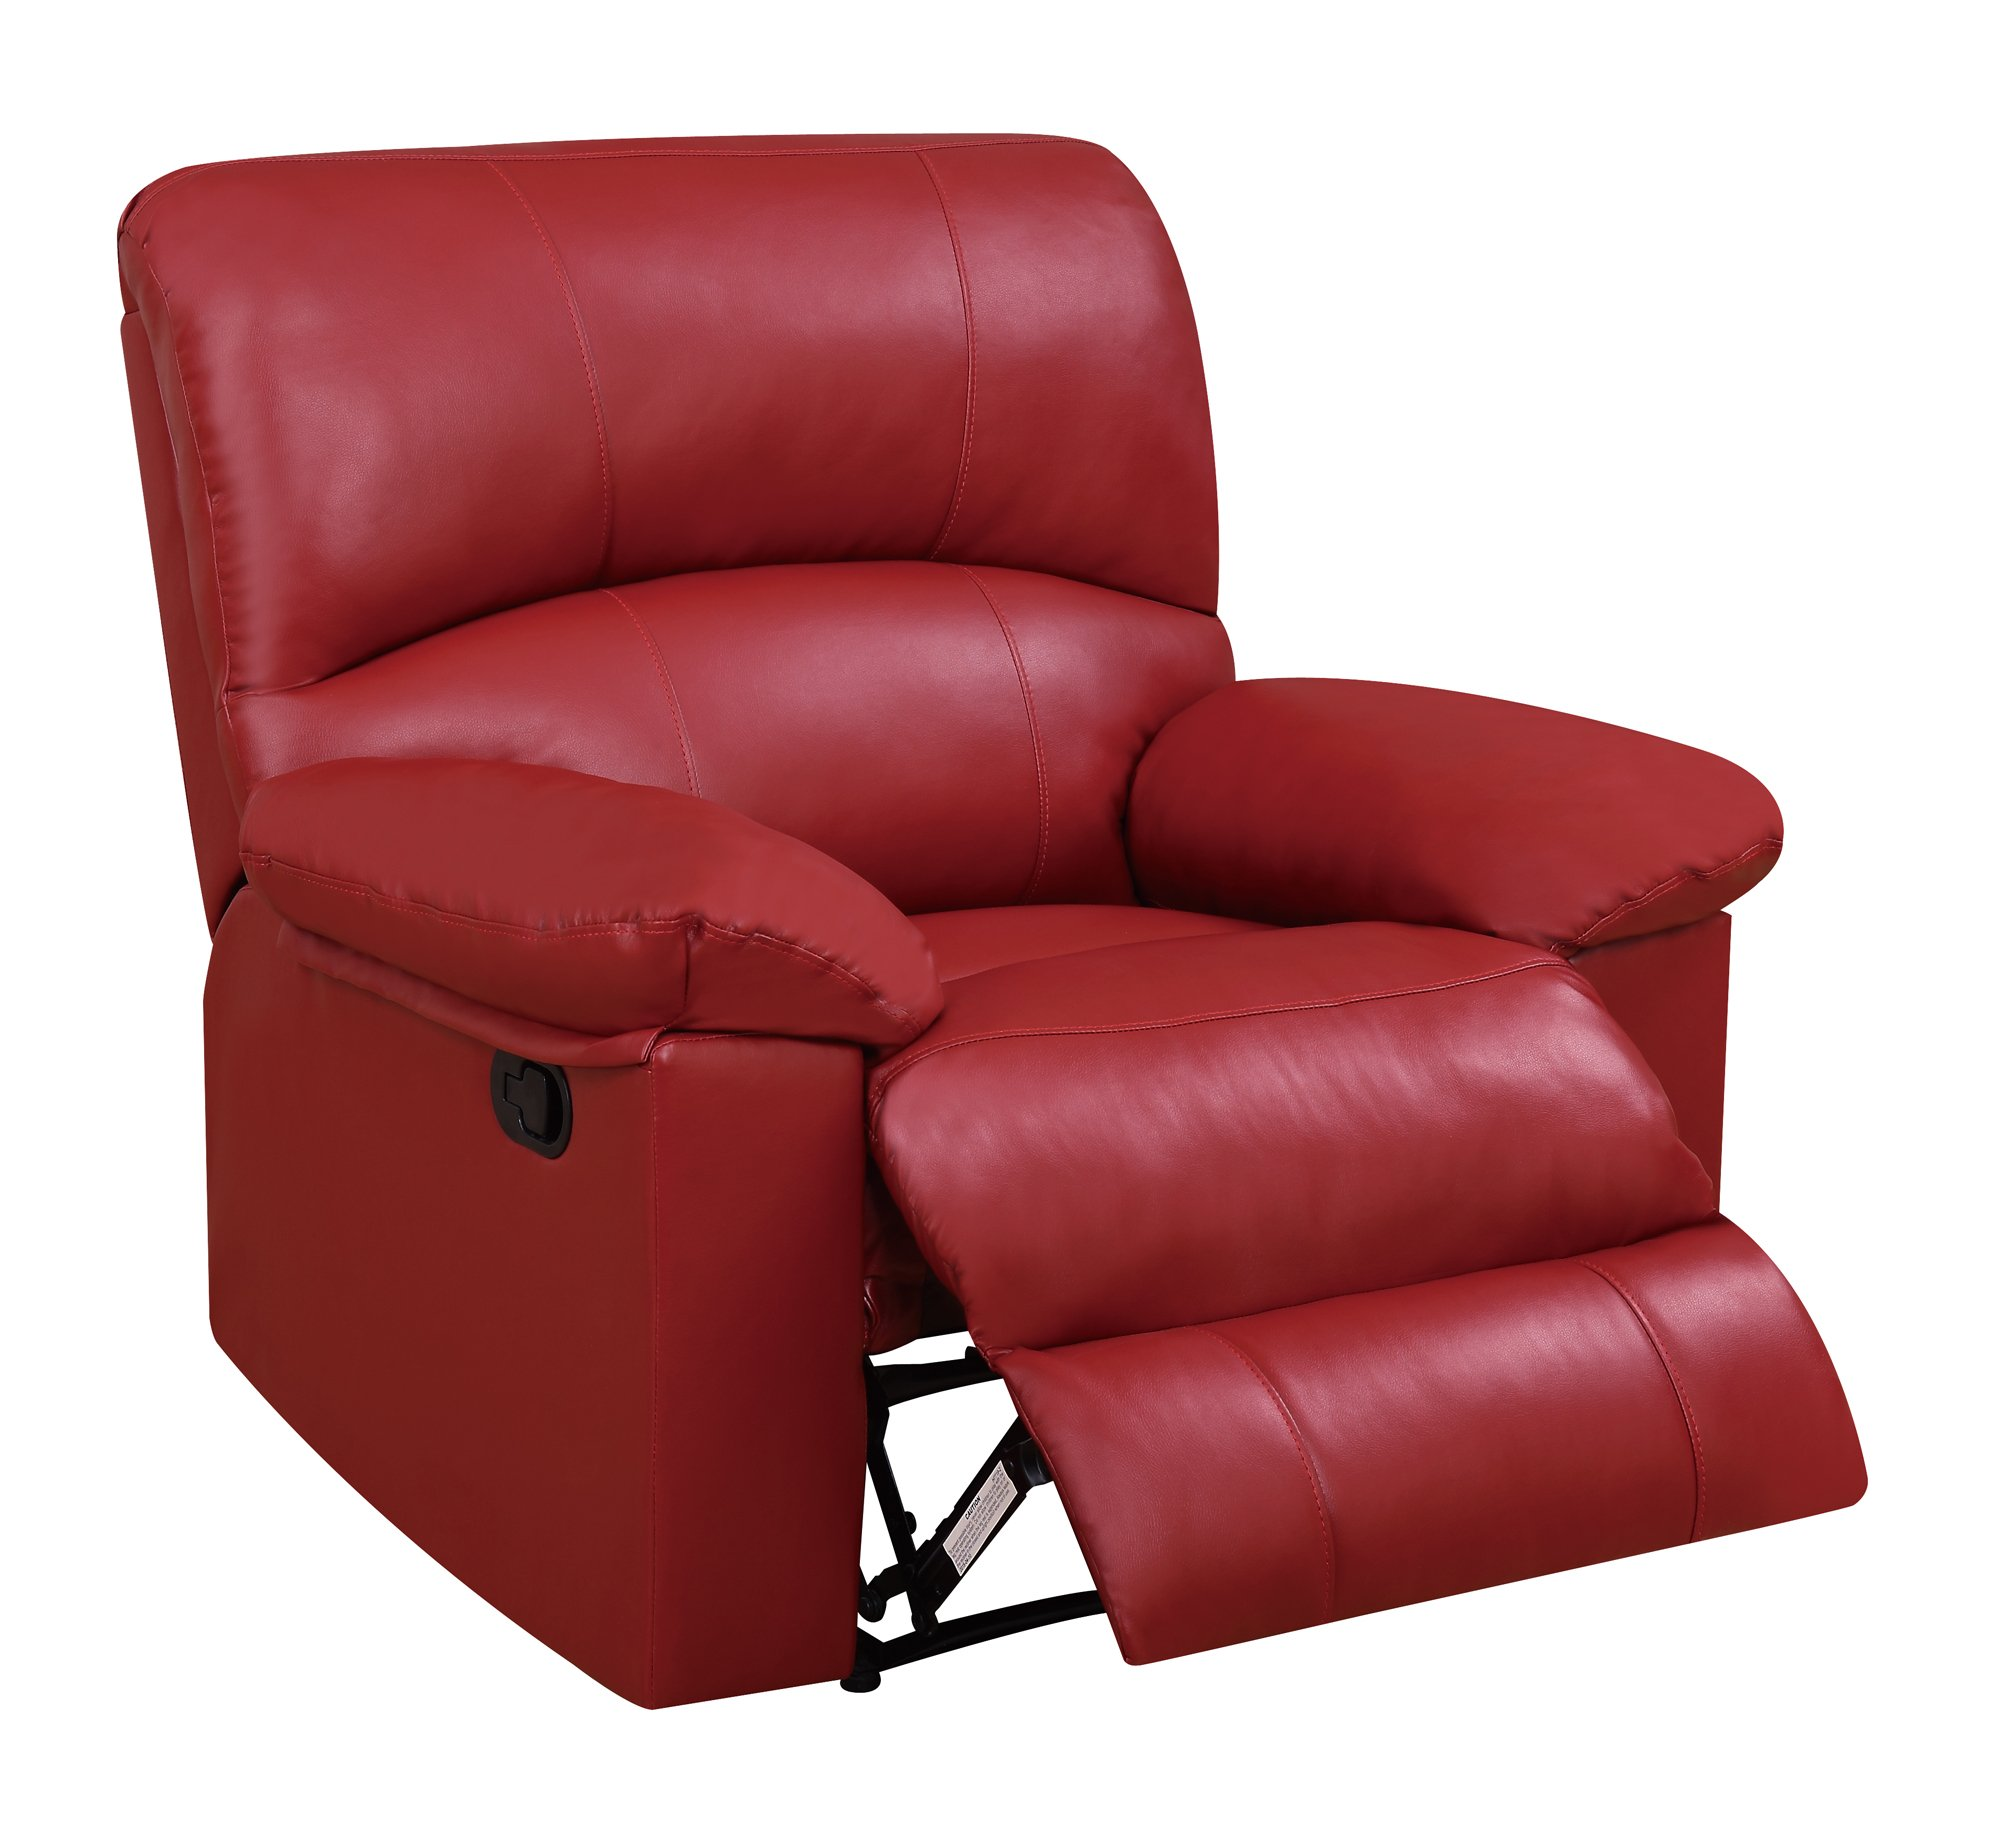 U Red PU Glider Reclining Chair by Global Furniture